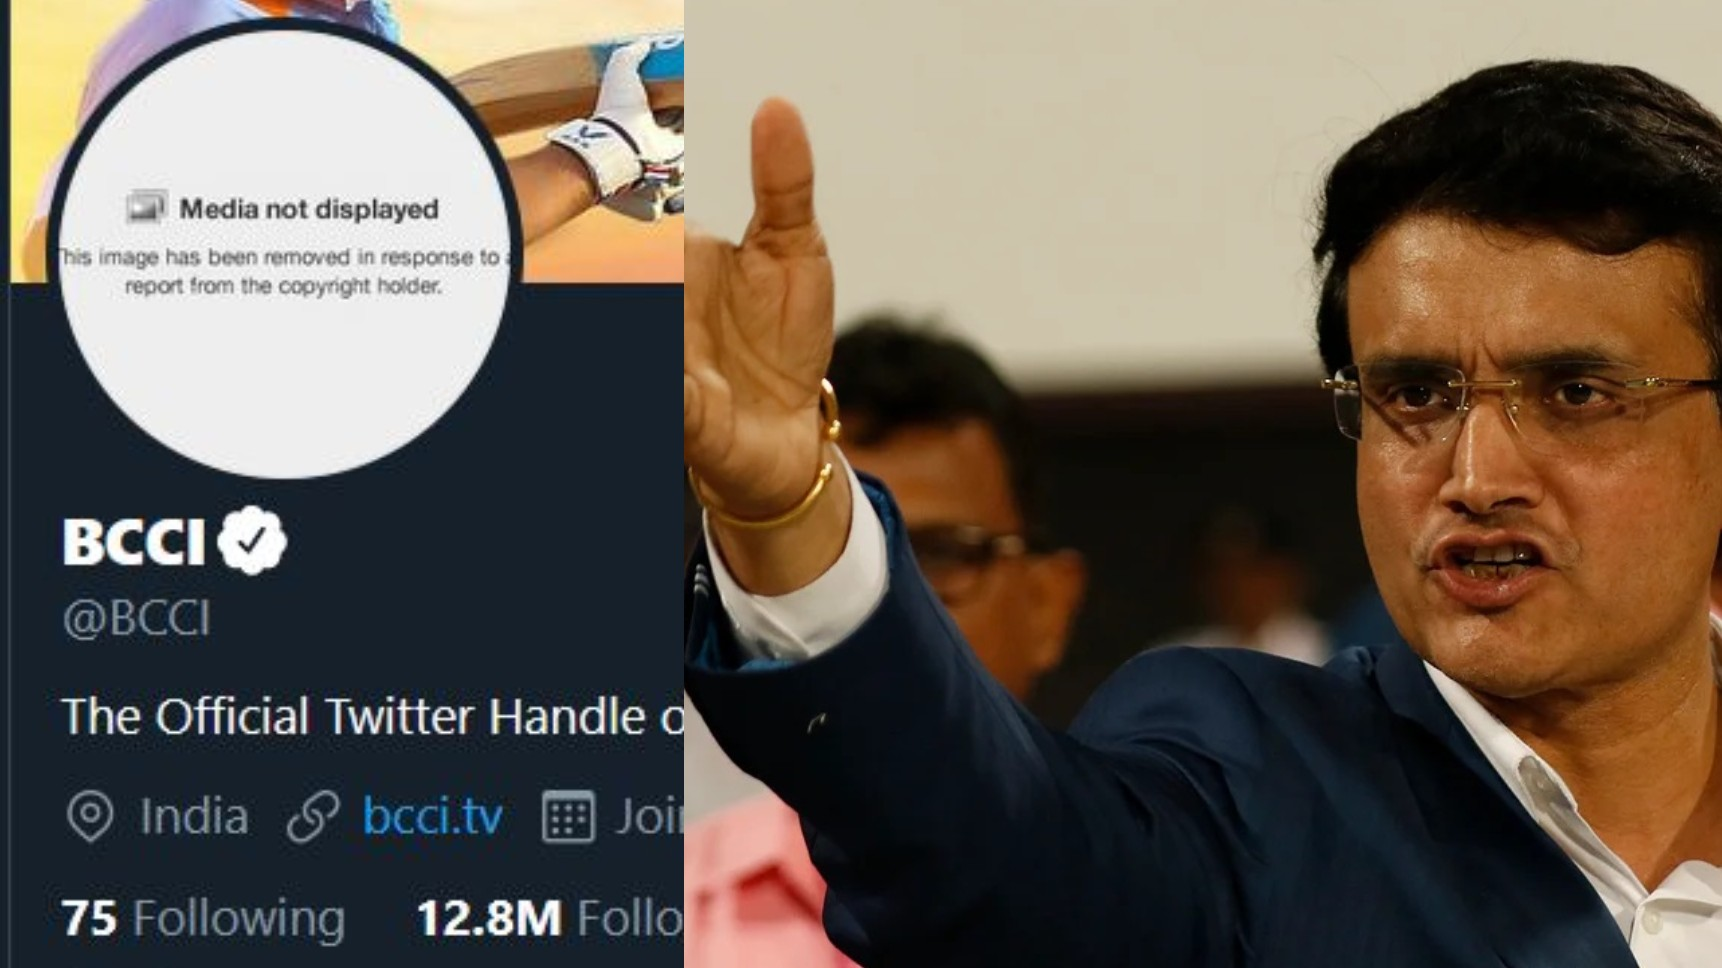 BCCI's profile photo on official Twitter handle gets blocked due to copyright claims